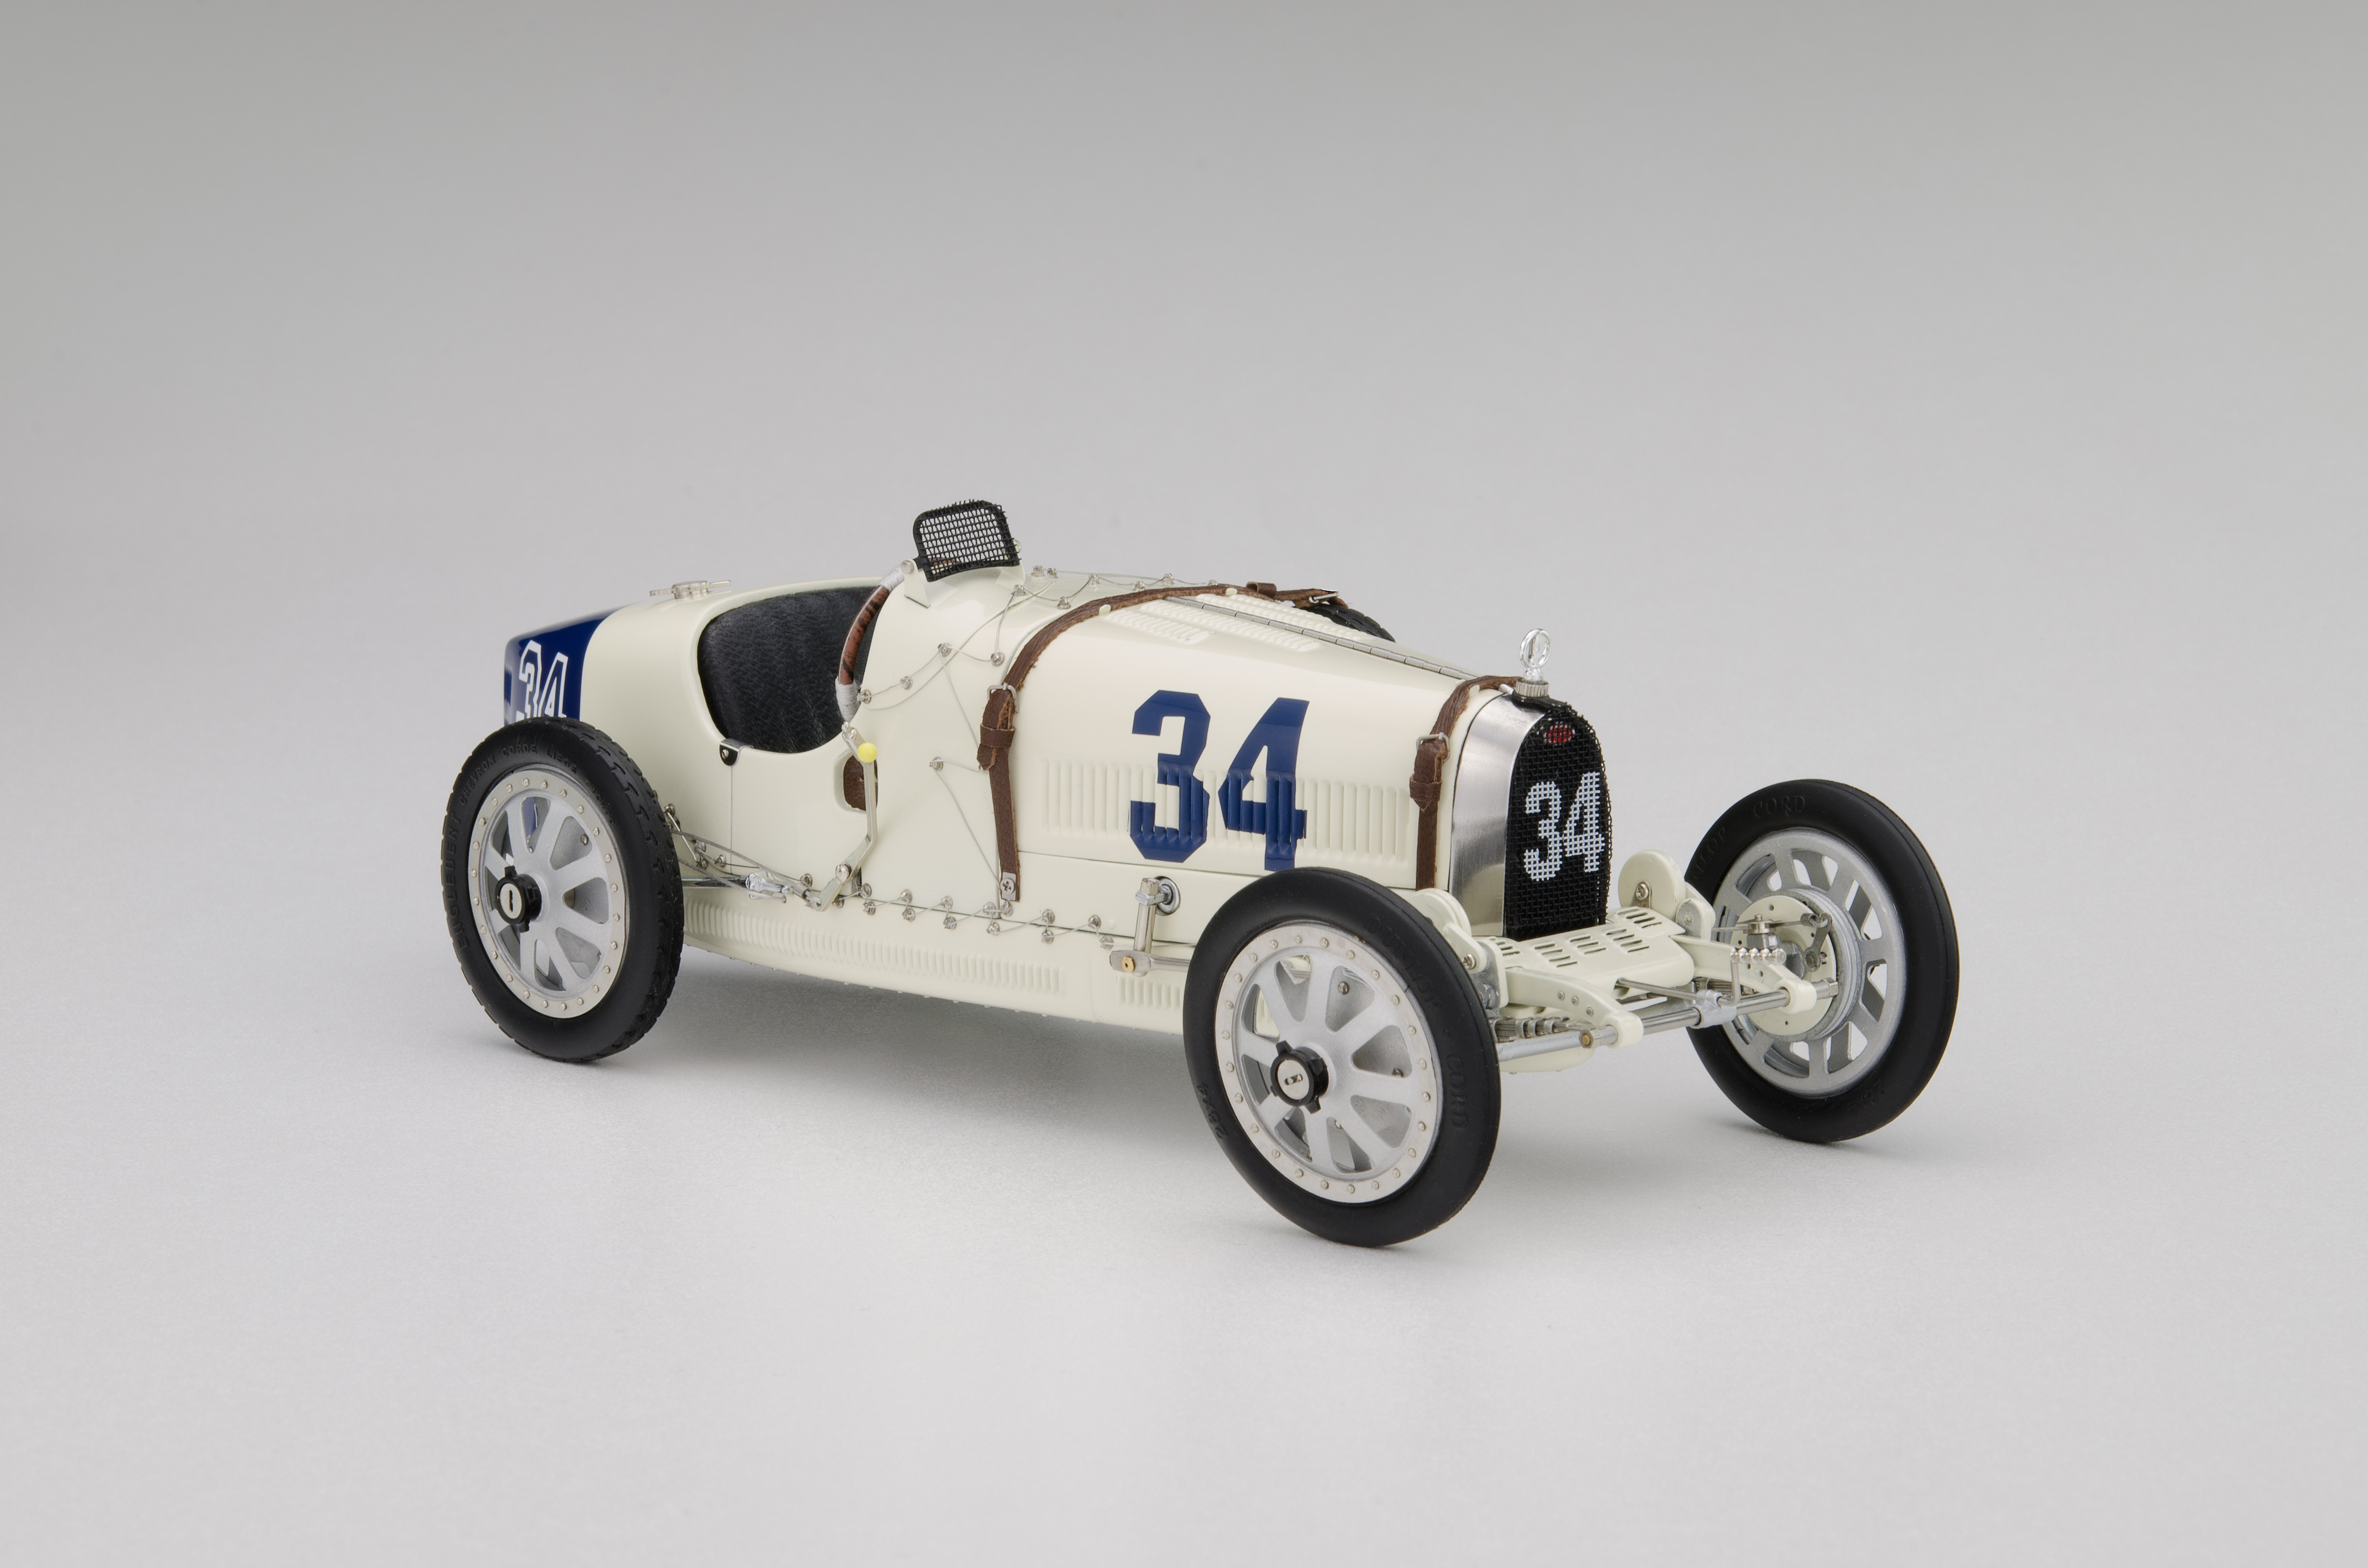 CMC 1/18 ブガッティ T35 #34 ネーションカラープロジェクト アメリカ 1924 BUGATTI - T35 N 34 NATION COULOR PROJECT USA 1924 WHITE